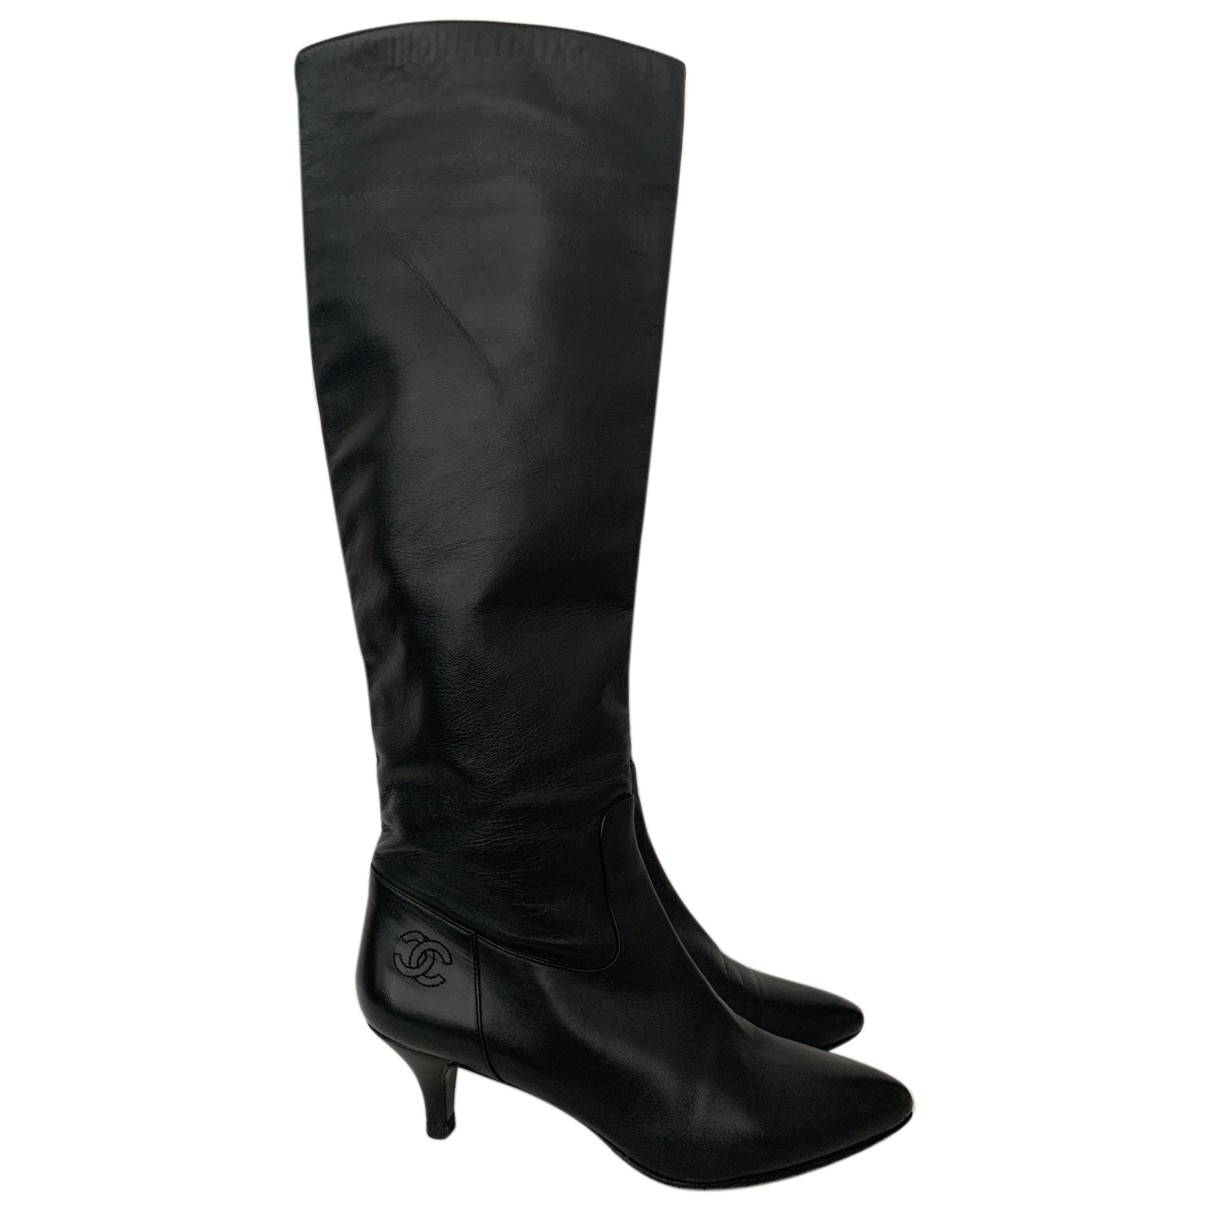 Chanel N Black Leather Boots for Women 38.5 EU